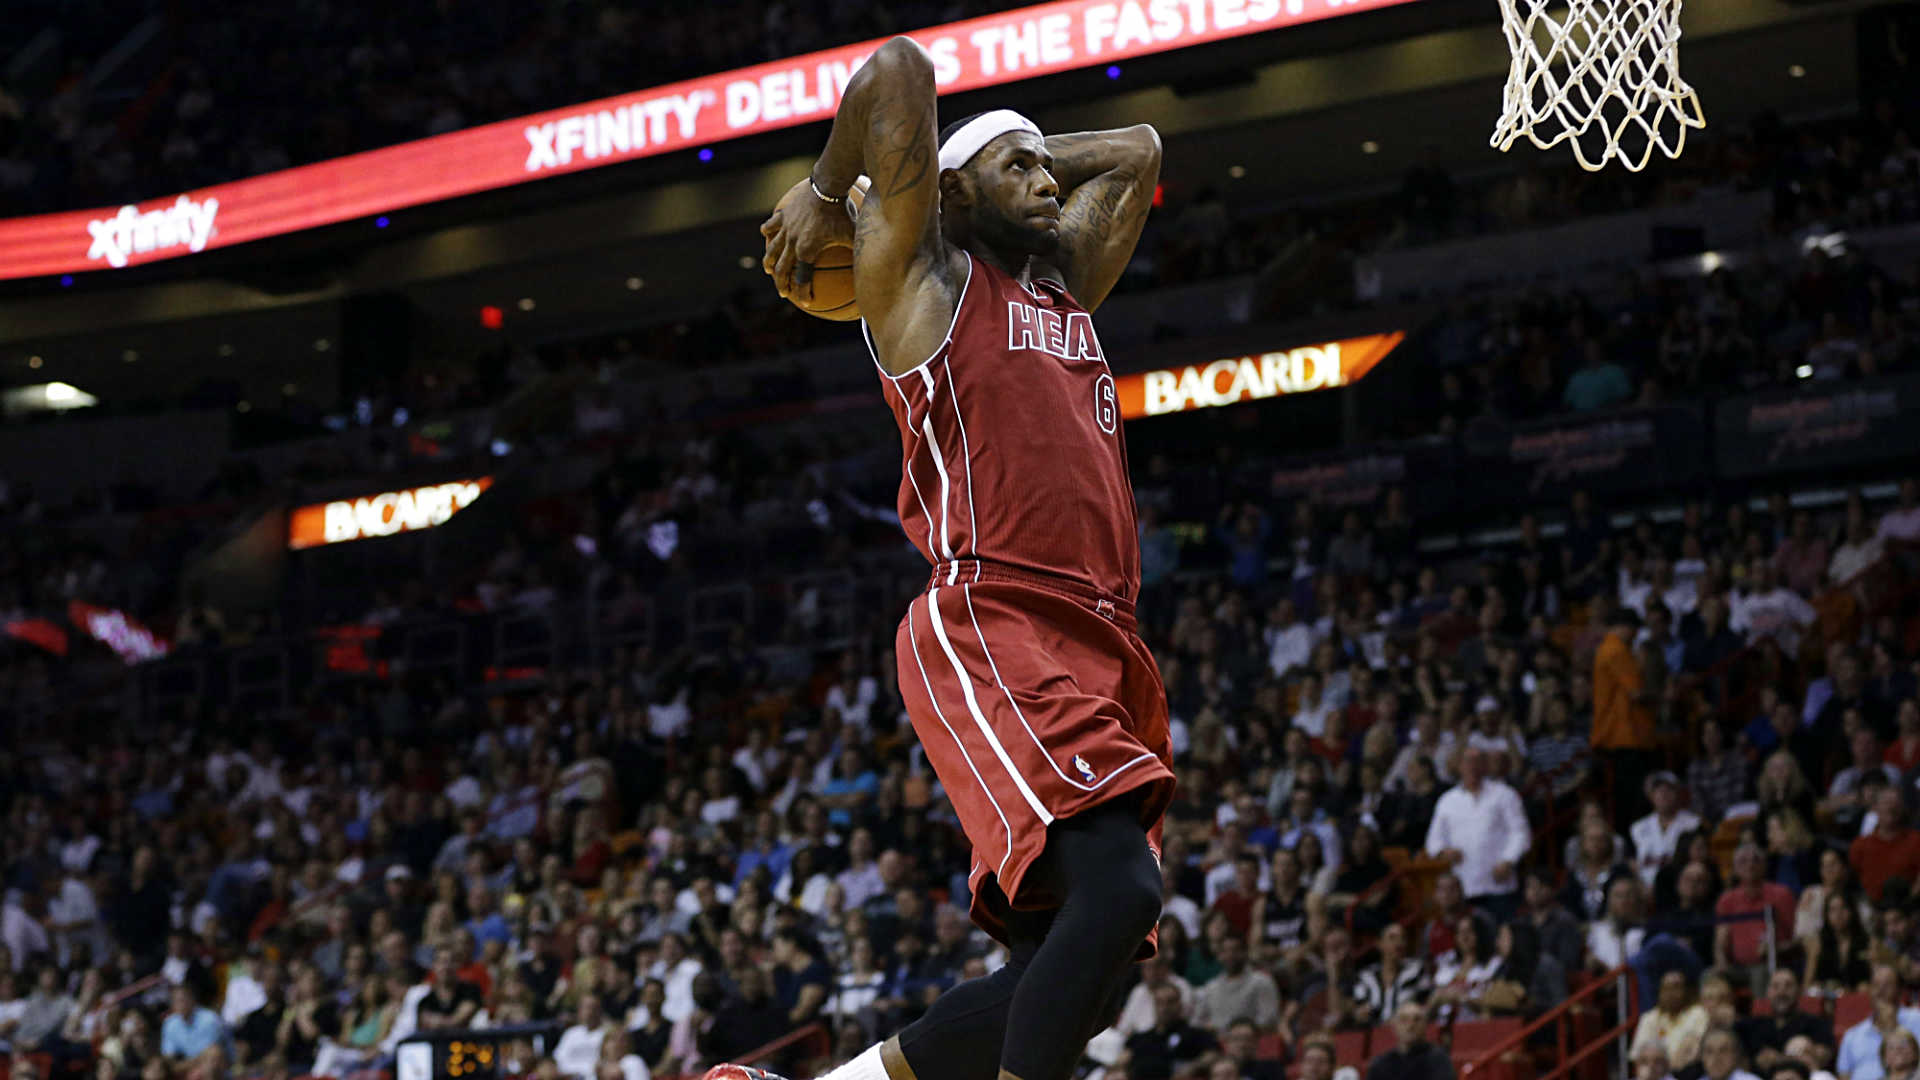 LeBron James-122013-AP-FTR.jpg